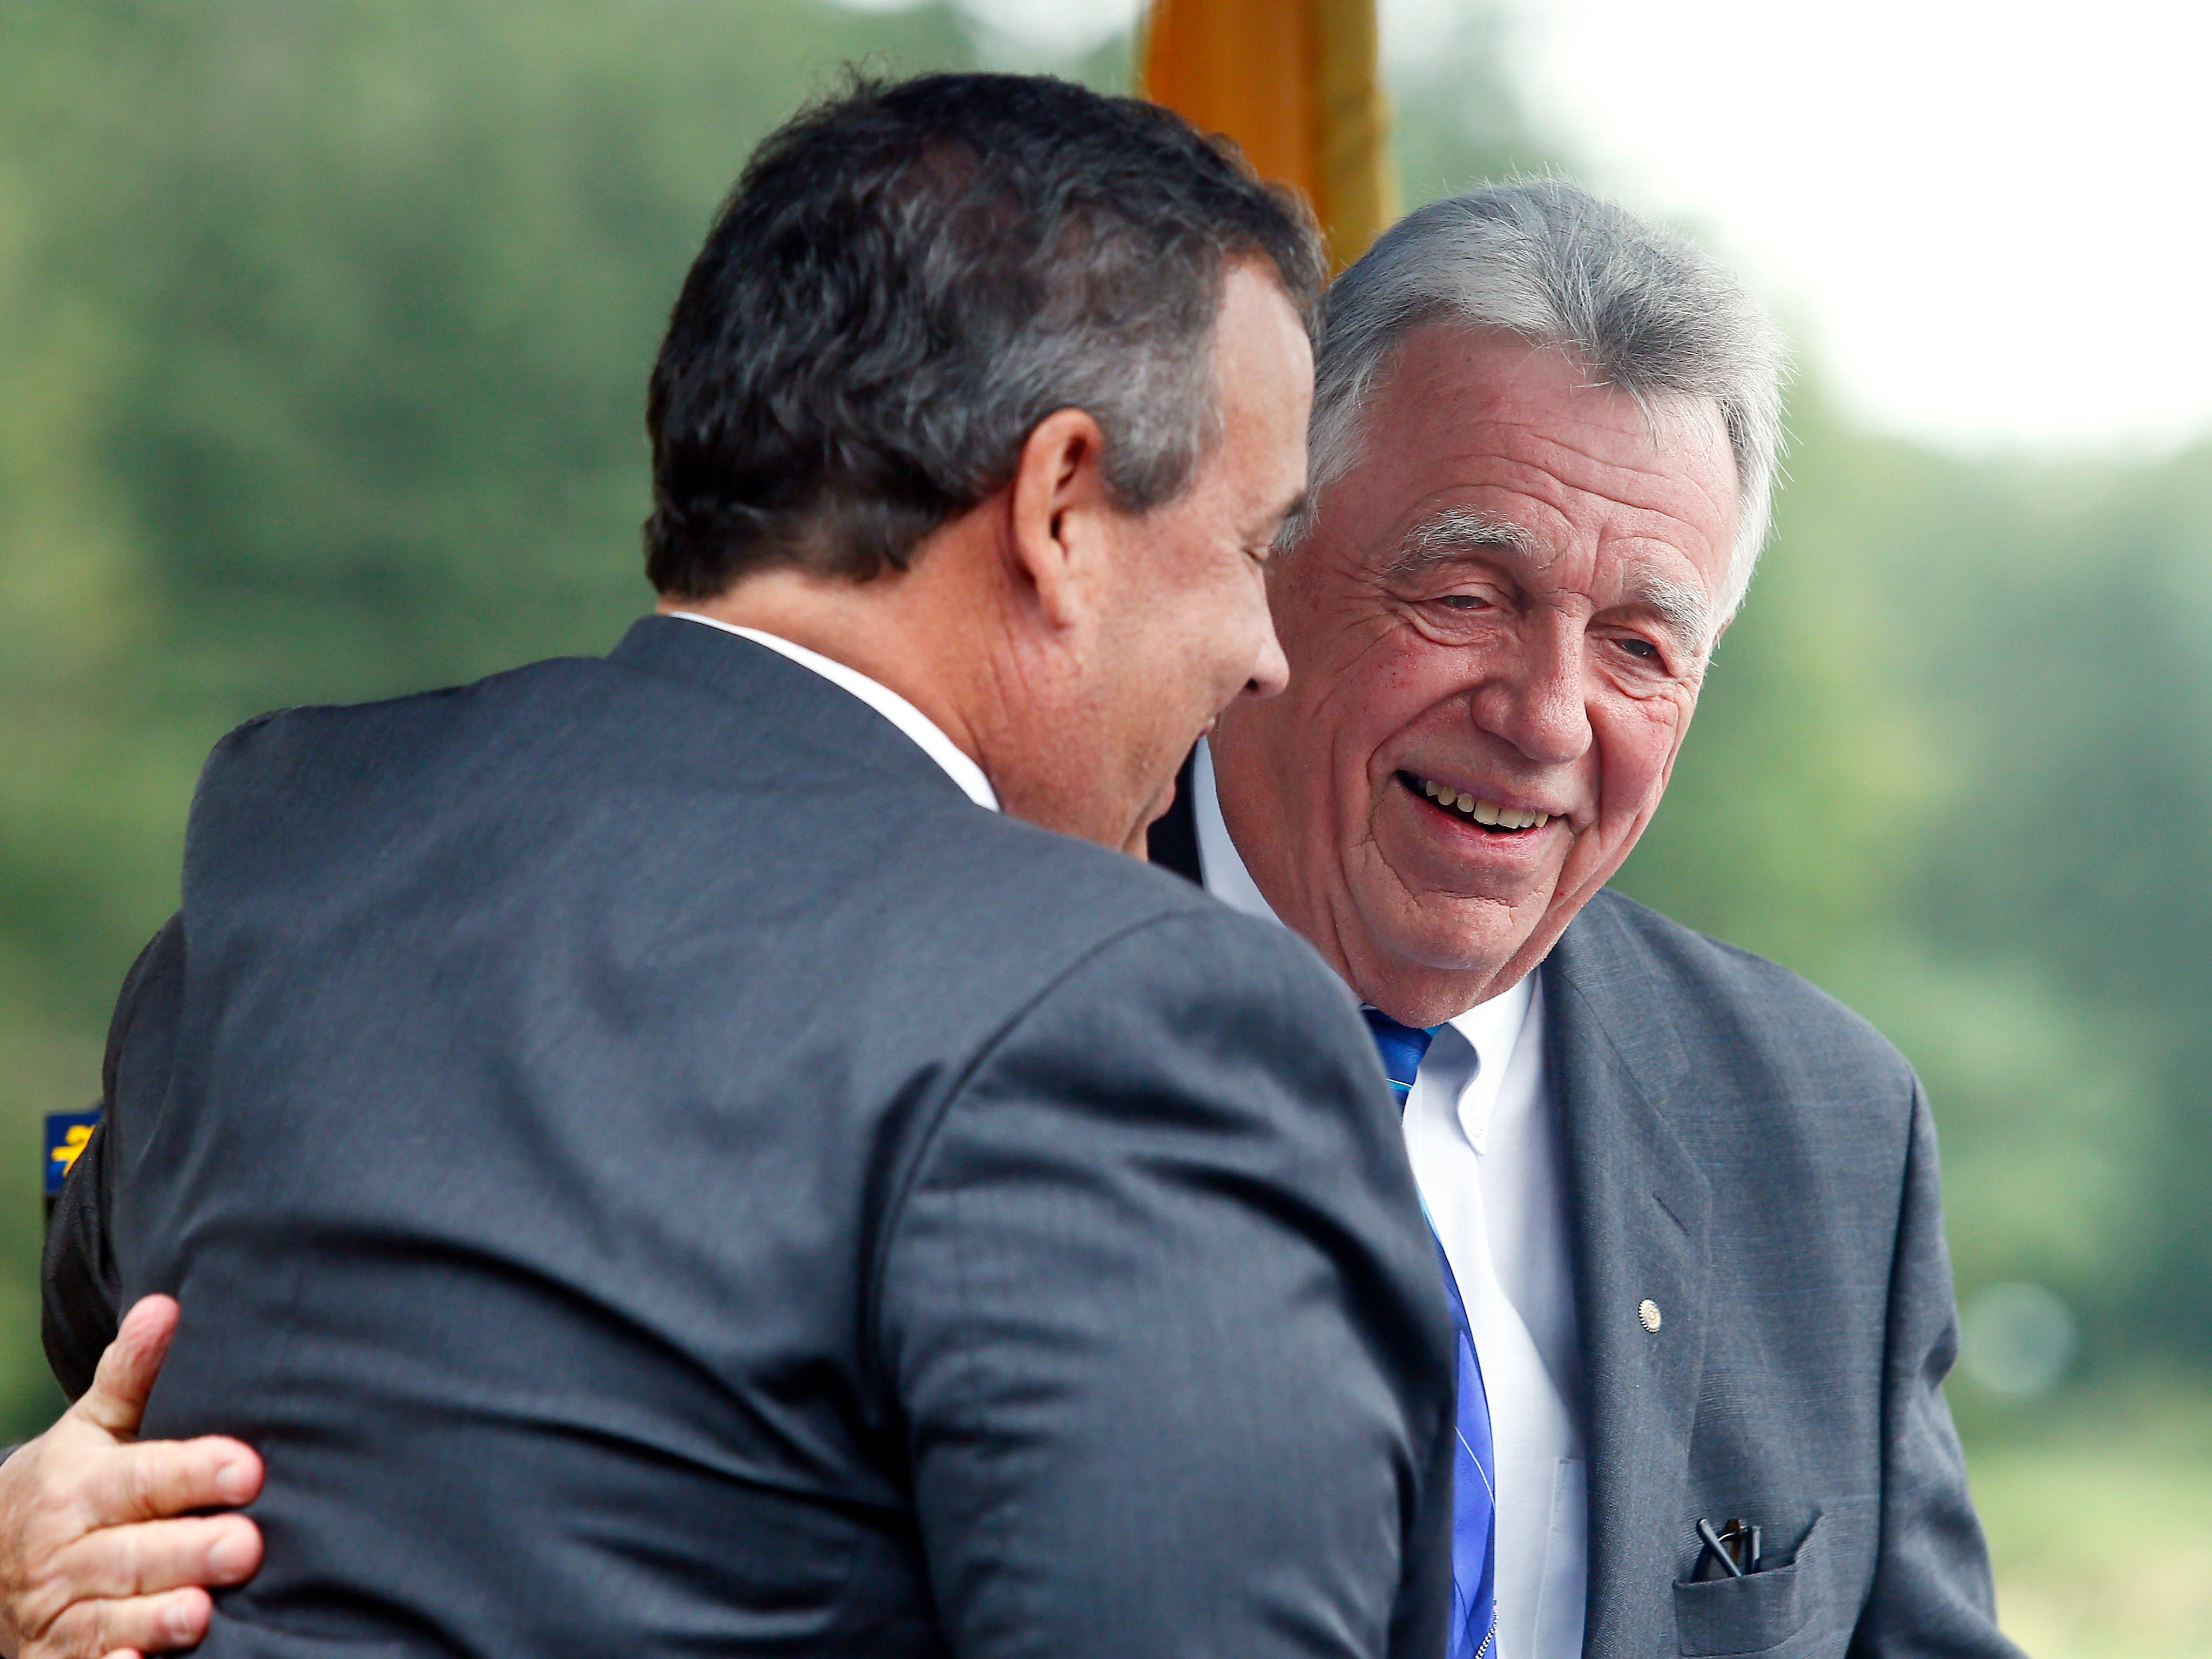 Morris Plains Mayor Frank Druetzler gives a hug to former New Jersey Governor Chris Christie as Morris County freeholders formally open Gov. Chris Christie Drive, a new main access road to Central Park of Morris County. September 12, 2018, Morris Plains, NJ